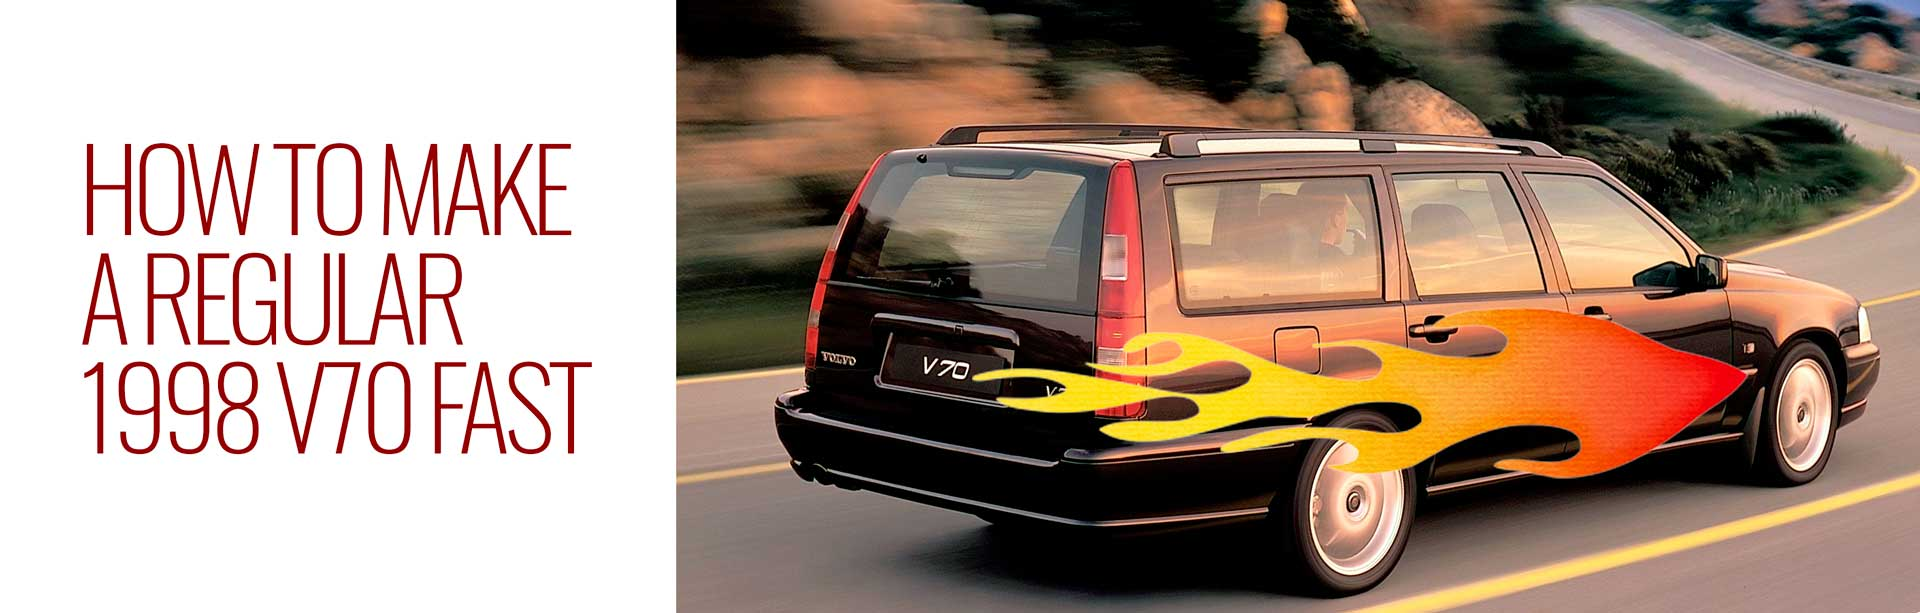 How To Make A Regular 1998 V70 Fast -